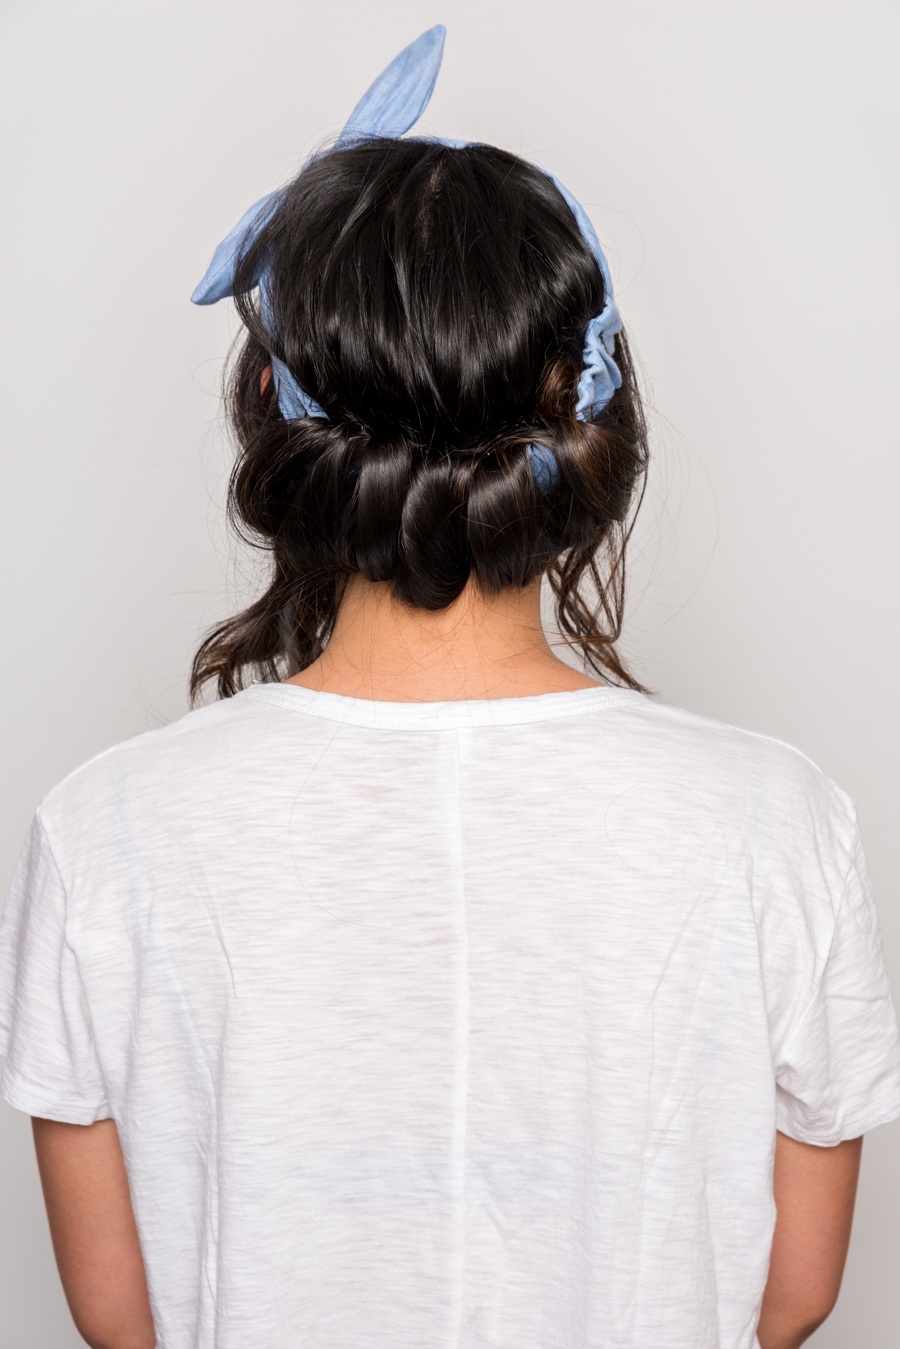 ROCK MAMA NYC LIFESTYLE BLOG -HOW TO DO AN EASY HEADBAND UPDO